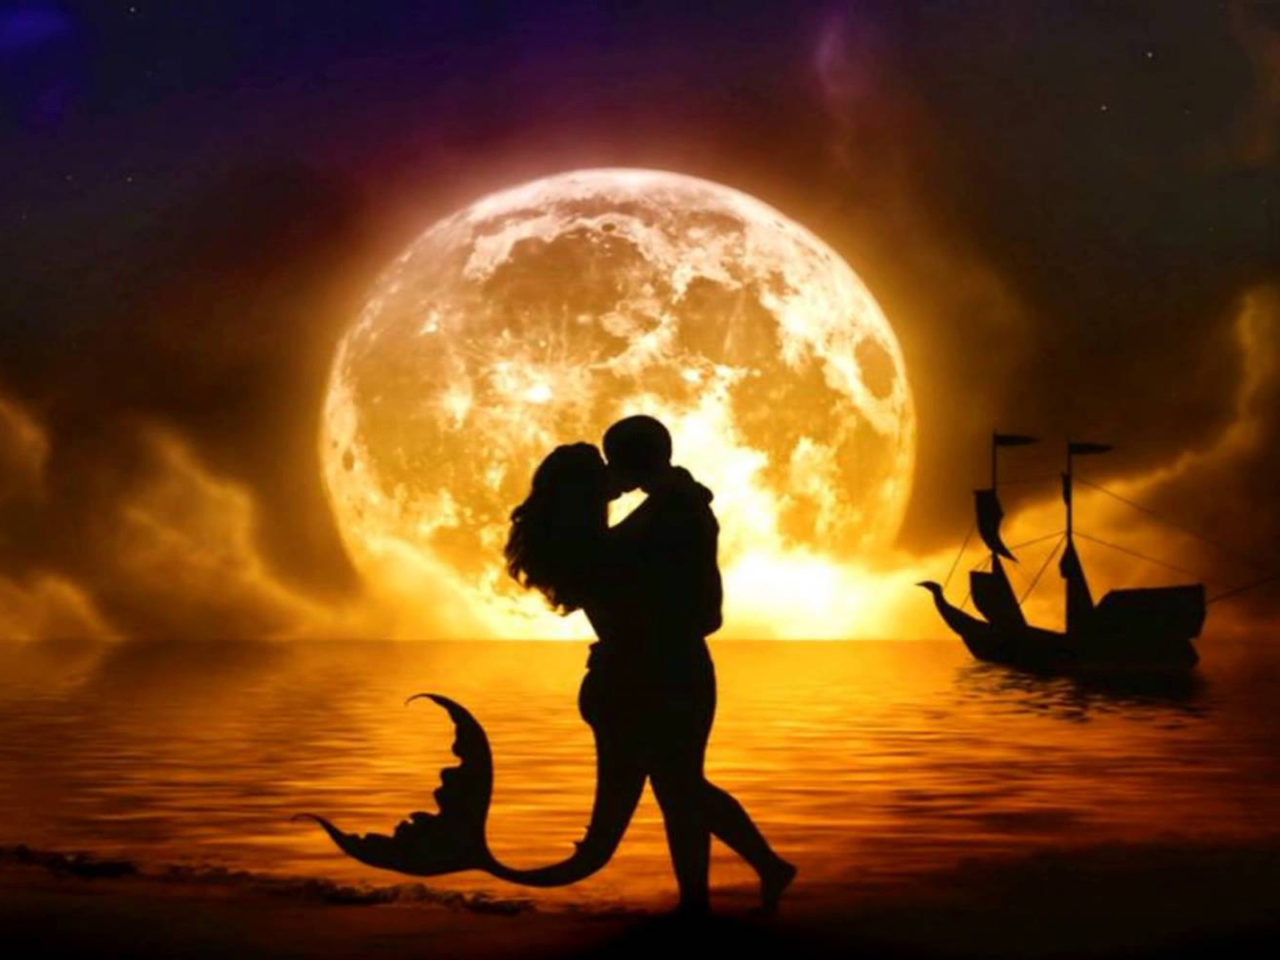 Romantic Wallpapers With Quotes Free Download Romantic Lovers Hug And Kiss Wallpaper Images Hd